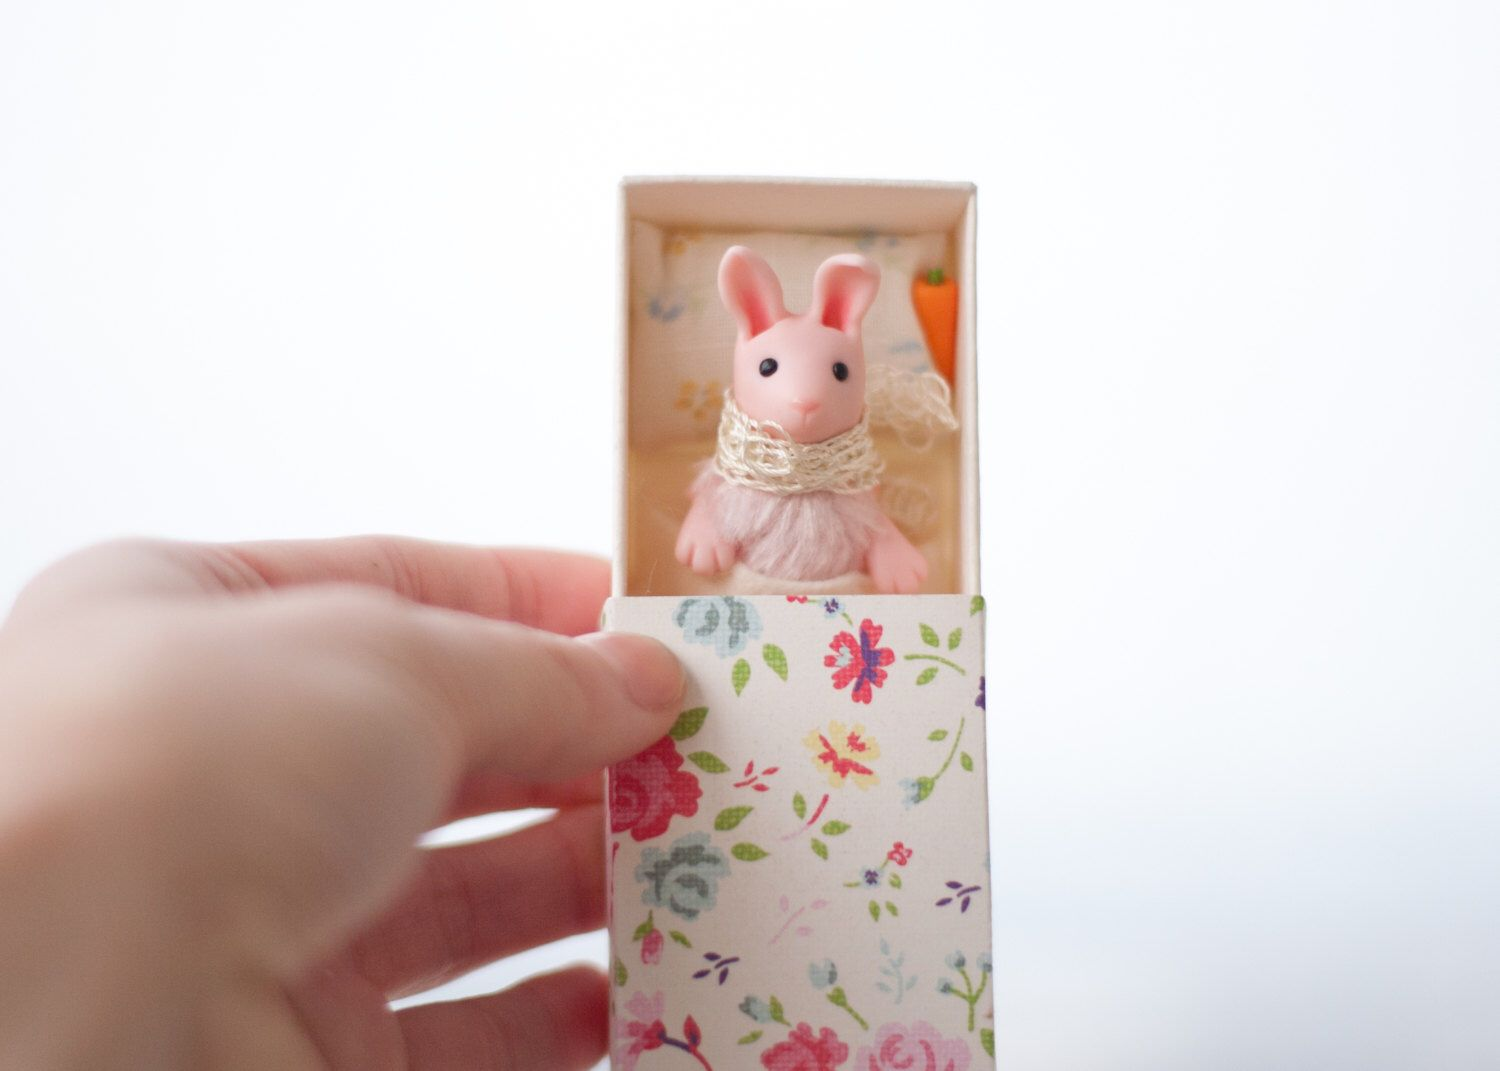 Reserved tiny 2 pink bunnies toys easter gift girl miniature reserved tiny 2 pink bunnies toys easter gift girl miniature matchbox bed art handmade clay negle Gallery